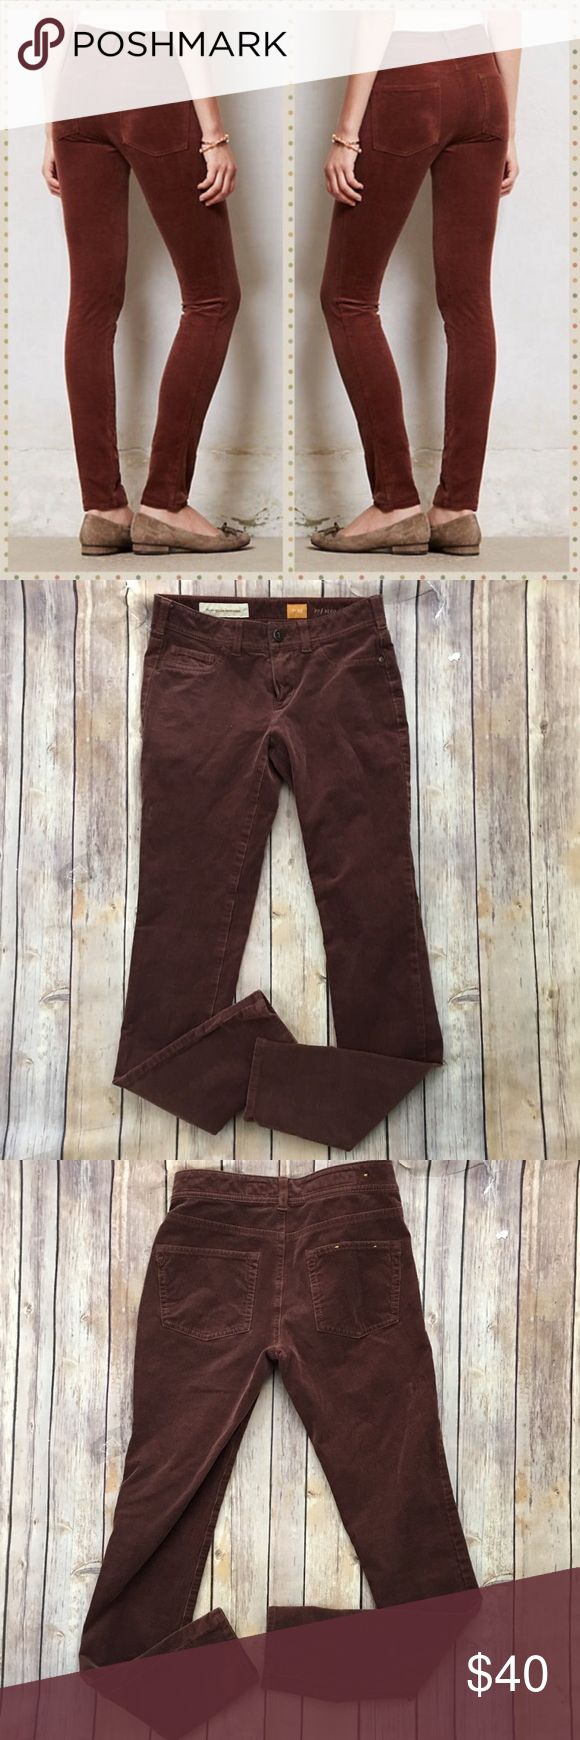 """Anthropologie Pilcro Serif Corduroy Leggings Brown Tag size - 25 Waist Measured Across - 13.5"""" Inseam - 29"""" Rise - 7.5"""" Great used condition! Always open to reasonable offers. Anthropologie Pants Leggings"""